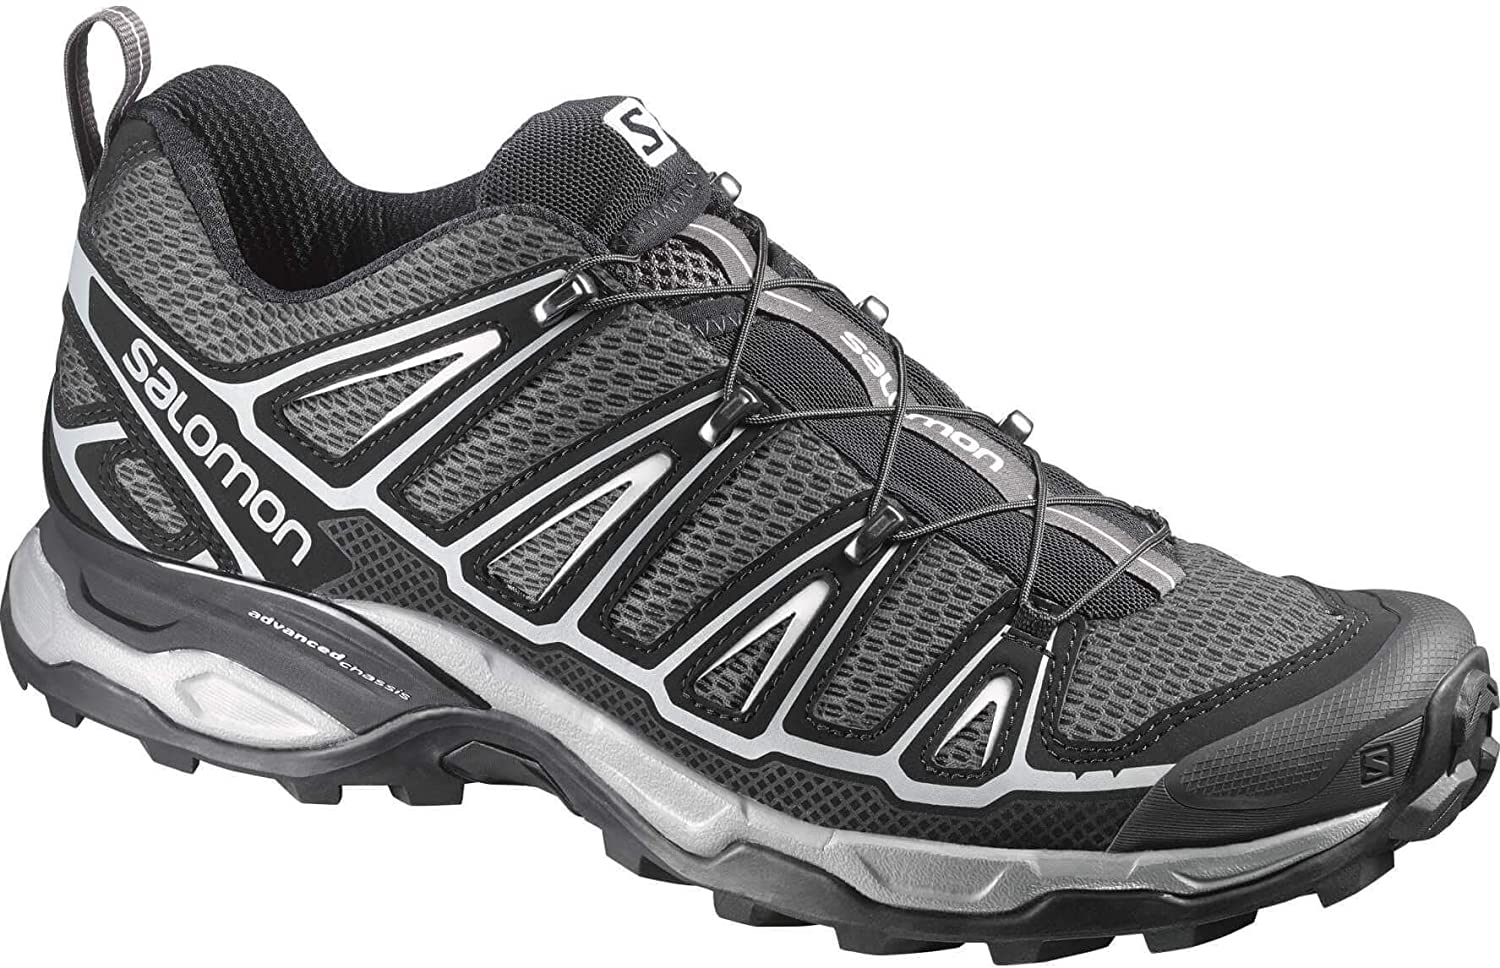 X Ultra 2 Low Rise Hiking Shoes